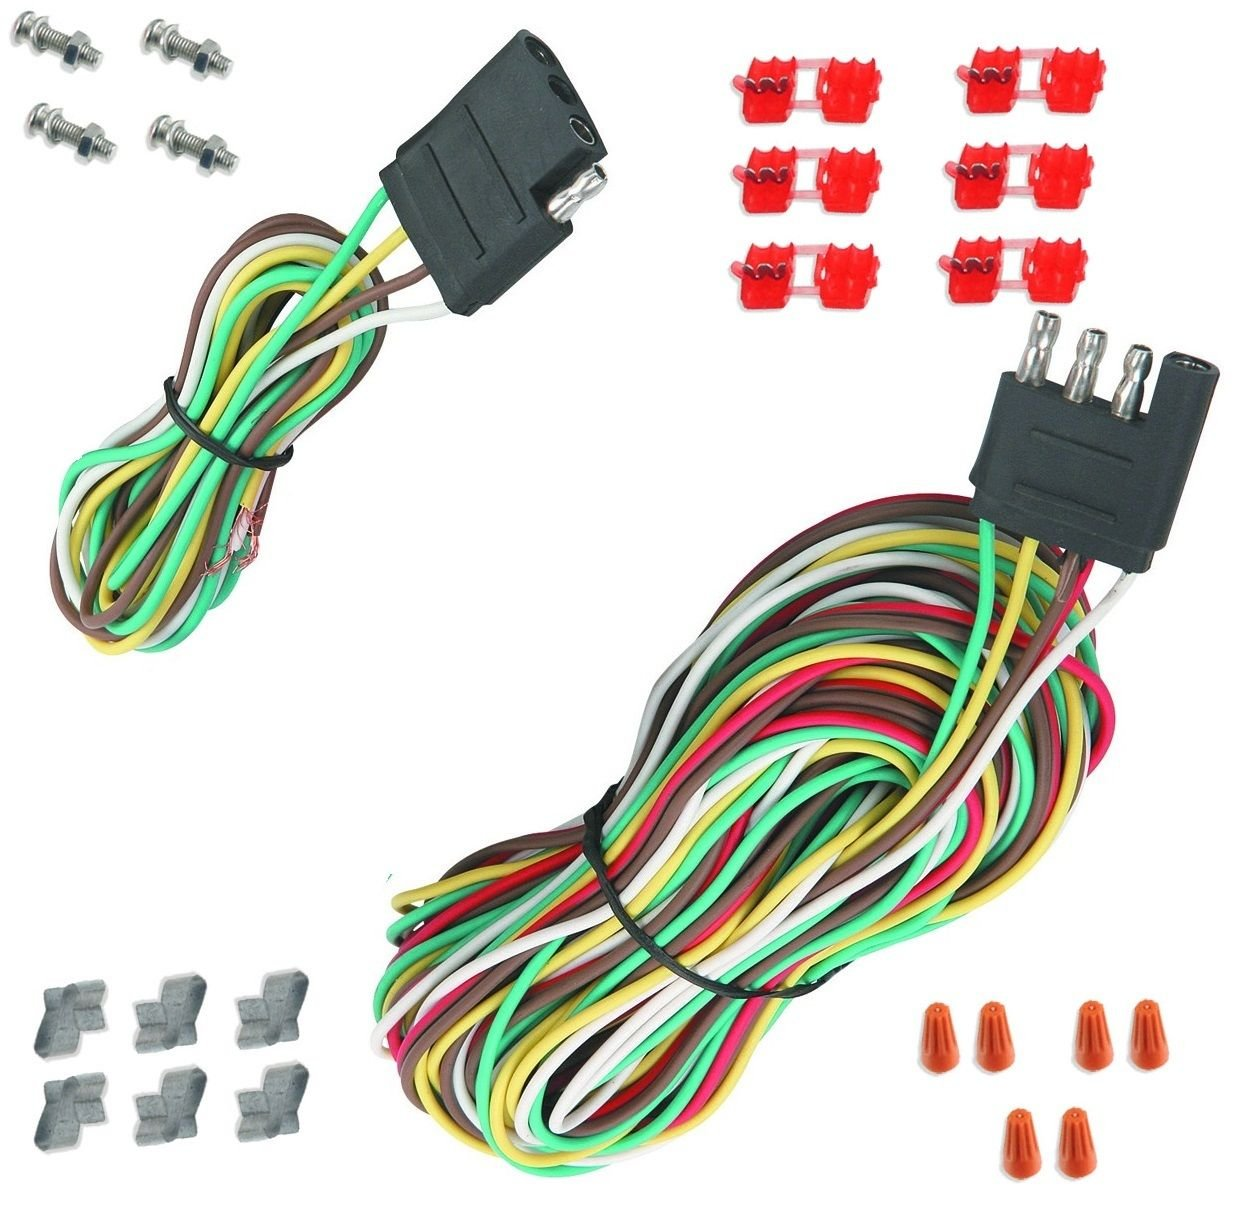 Amazon.com: 25` 4 Way Trailer Wiring Connection Kit Flat Wire Extension  Harness Boat Car Rv: Kitchen & Dining